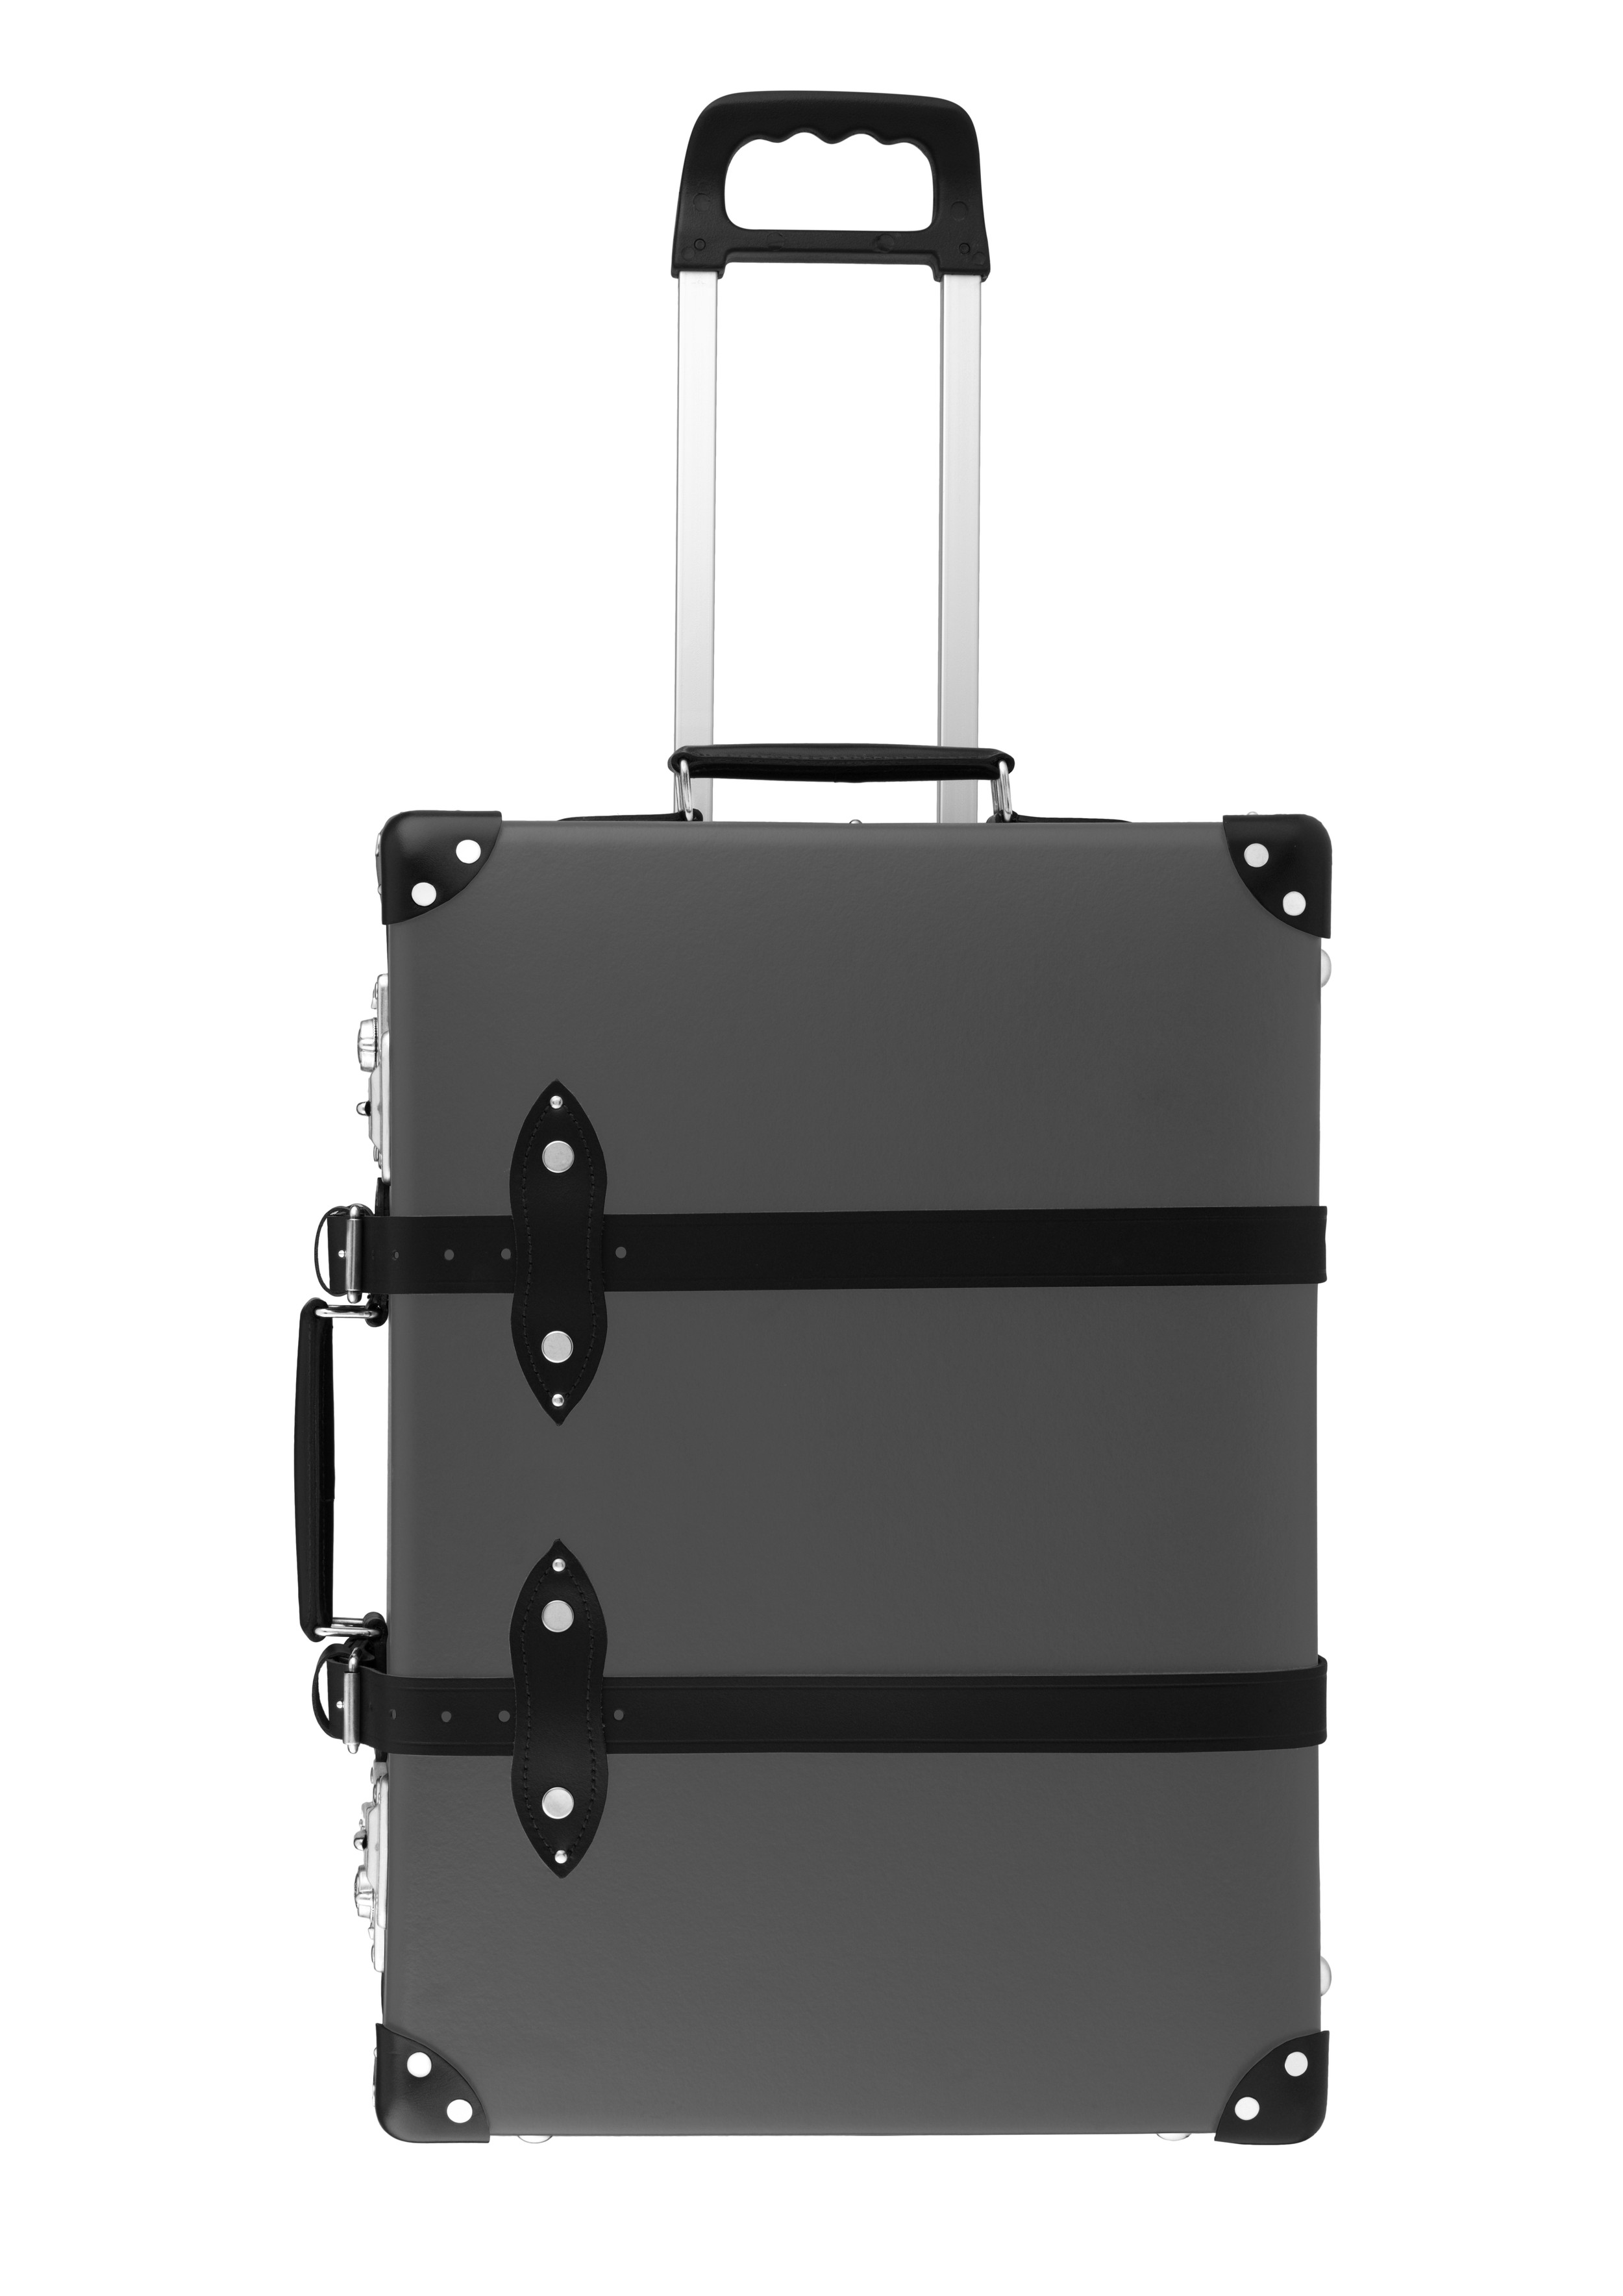 Globe-Trotter 'Centenary' Collection carry on in Grey with Black leather trim and straps. From $550